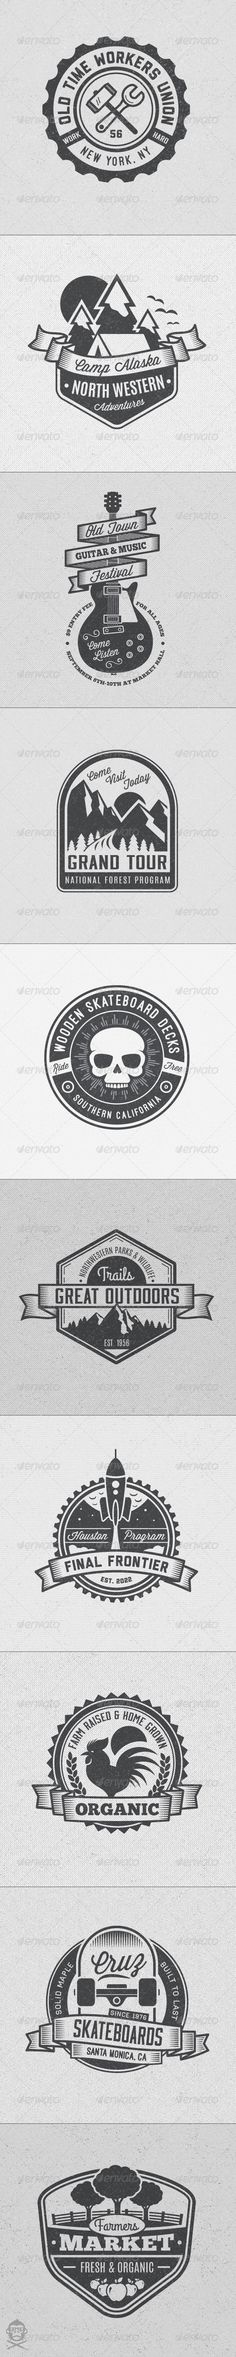 Vintage Style Badges and Logos Vol 4